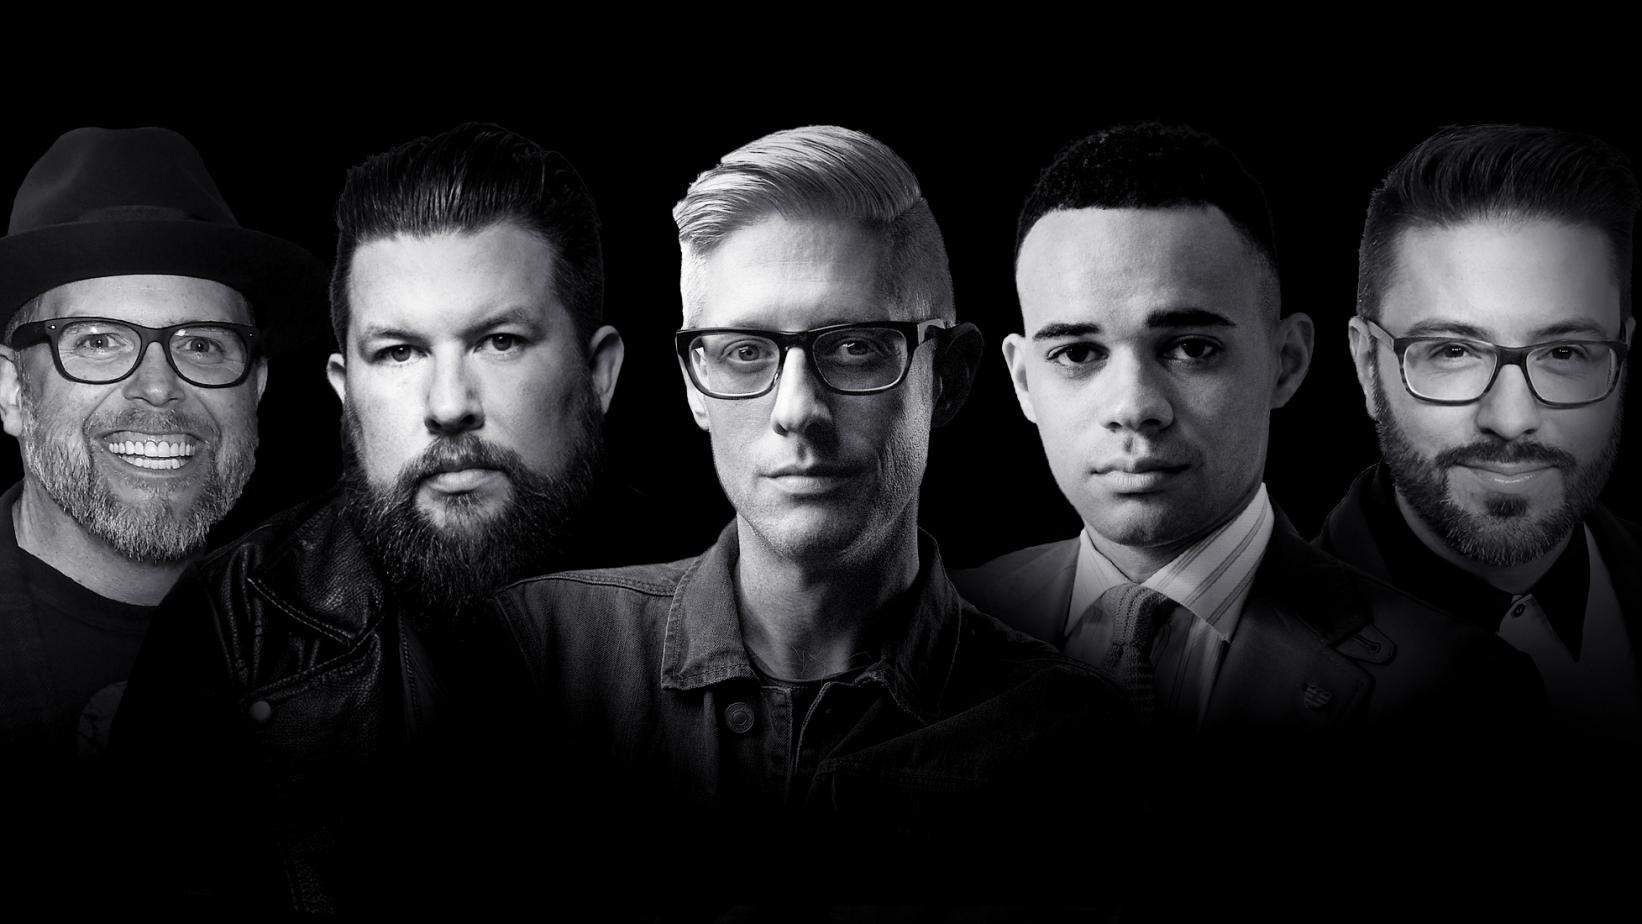 MercyMe's Bart Millard, Zach Williams, Matt Maher, Tauren Wells, and Danny Gokey